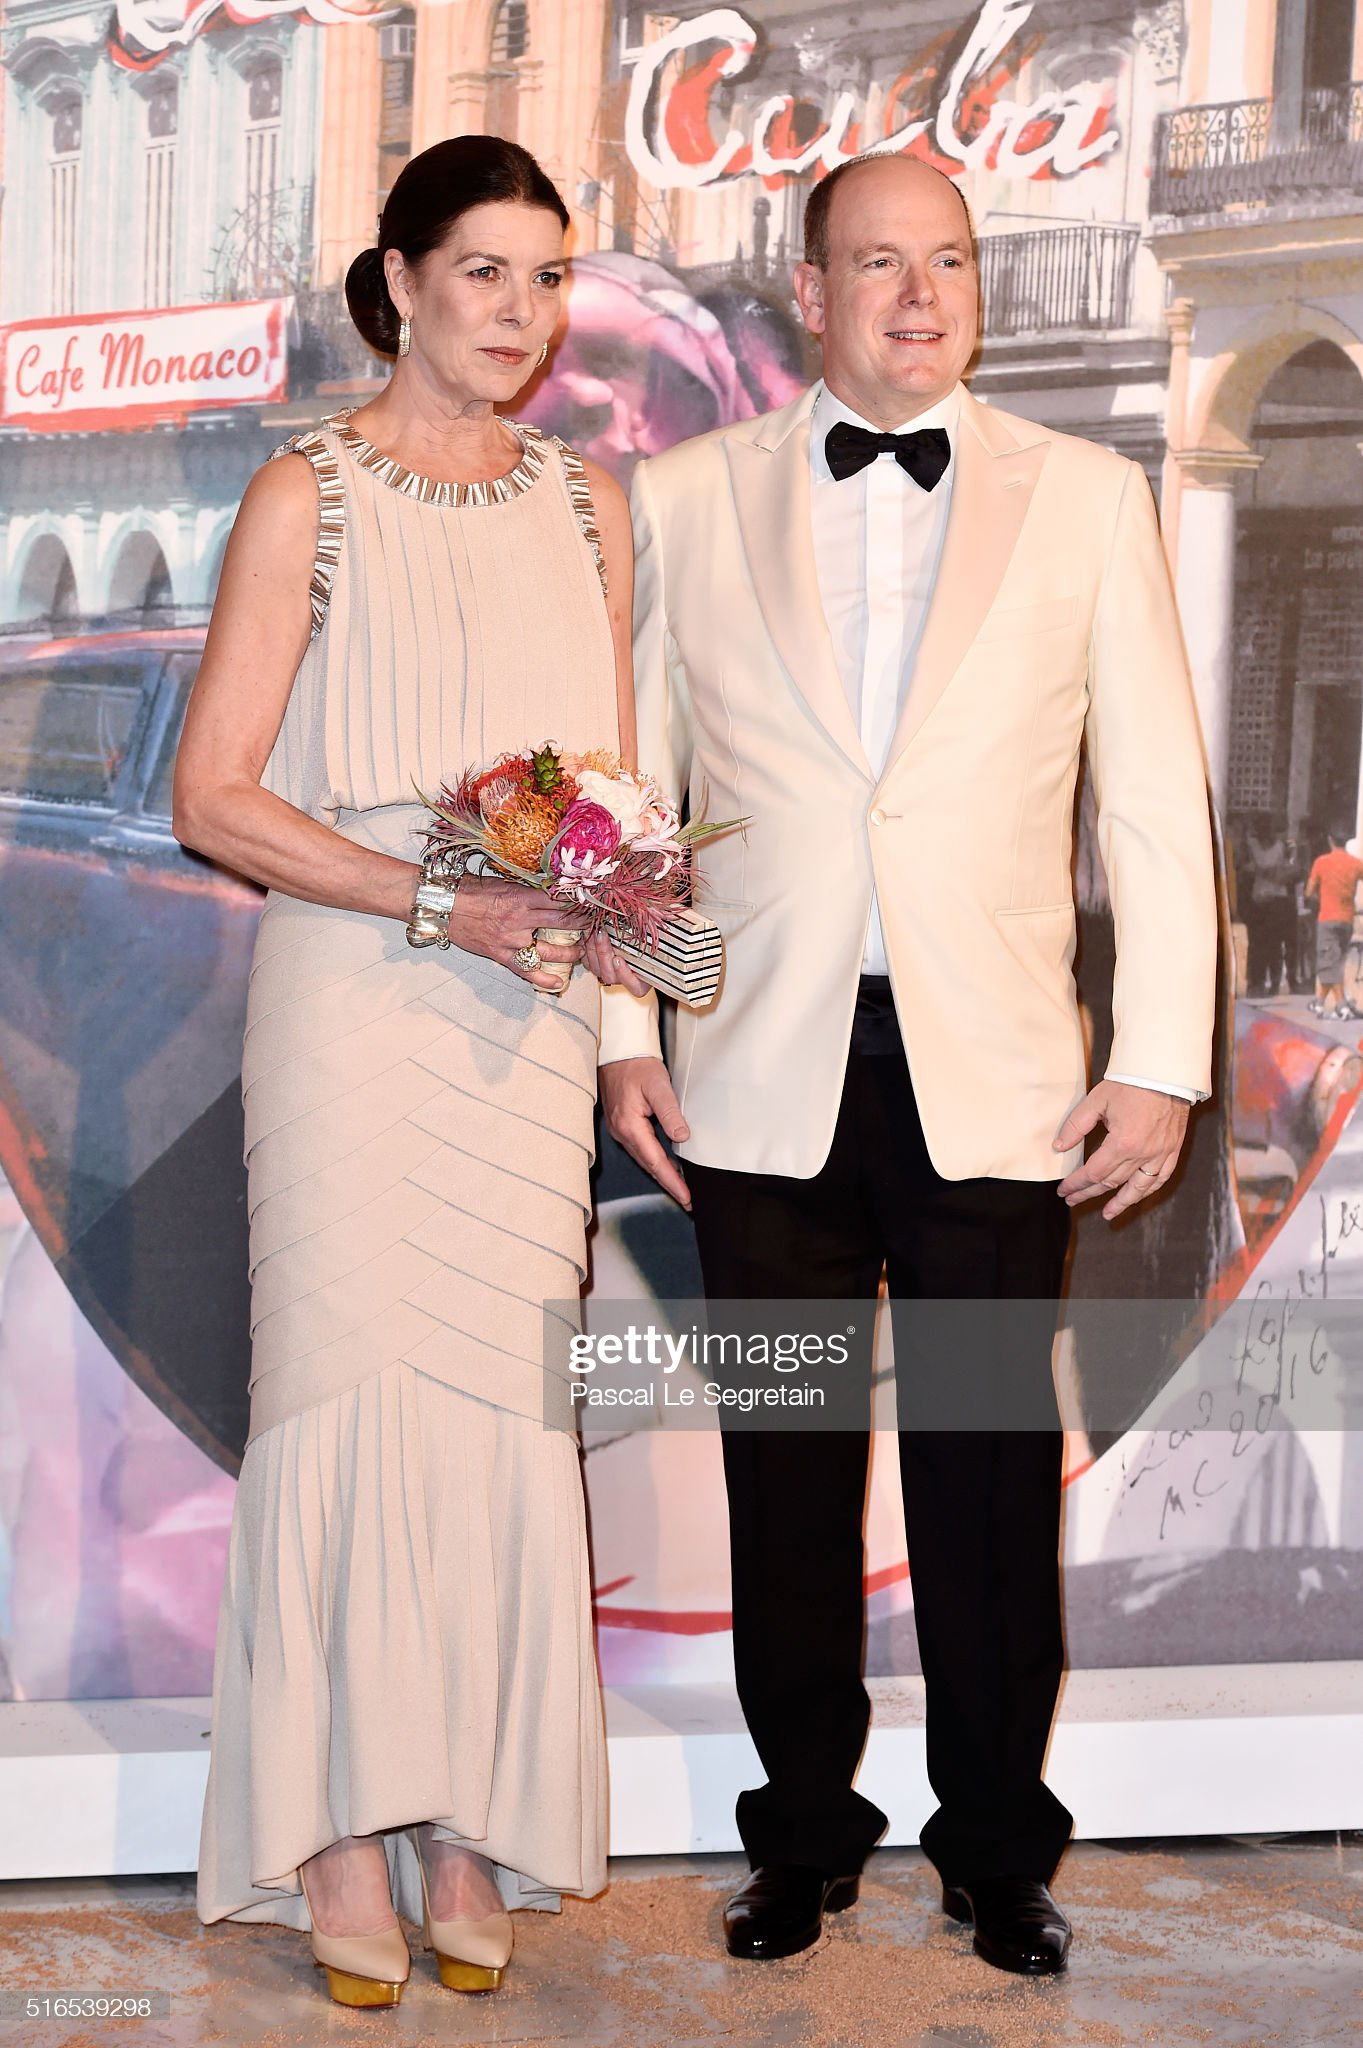 62nd Rose Ball To Benefit The Princess Grace Foundation In Monte-Carlo : News Photo